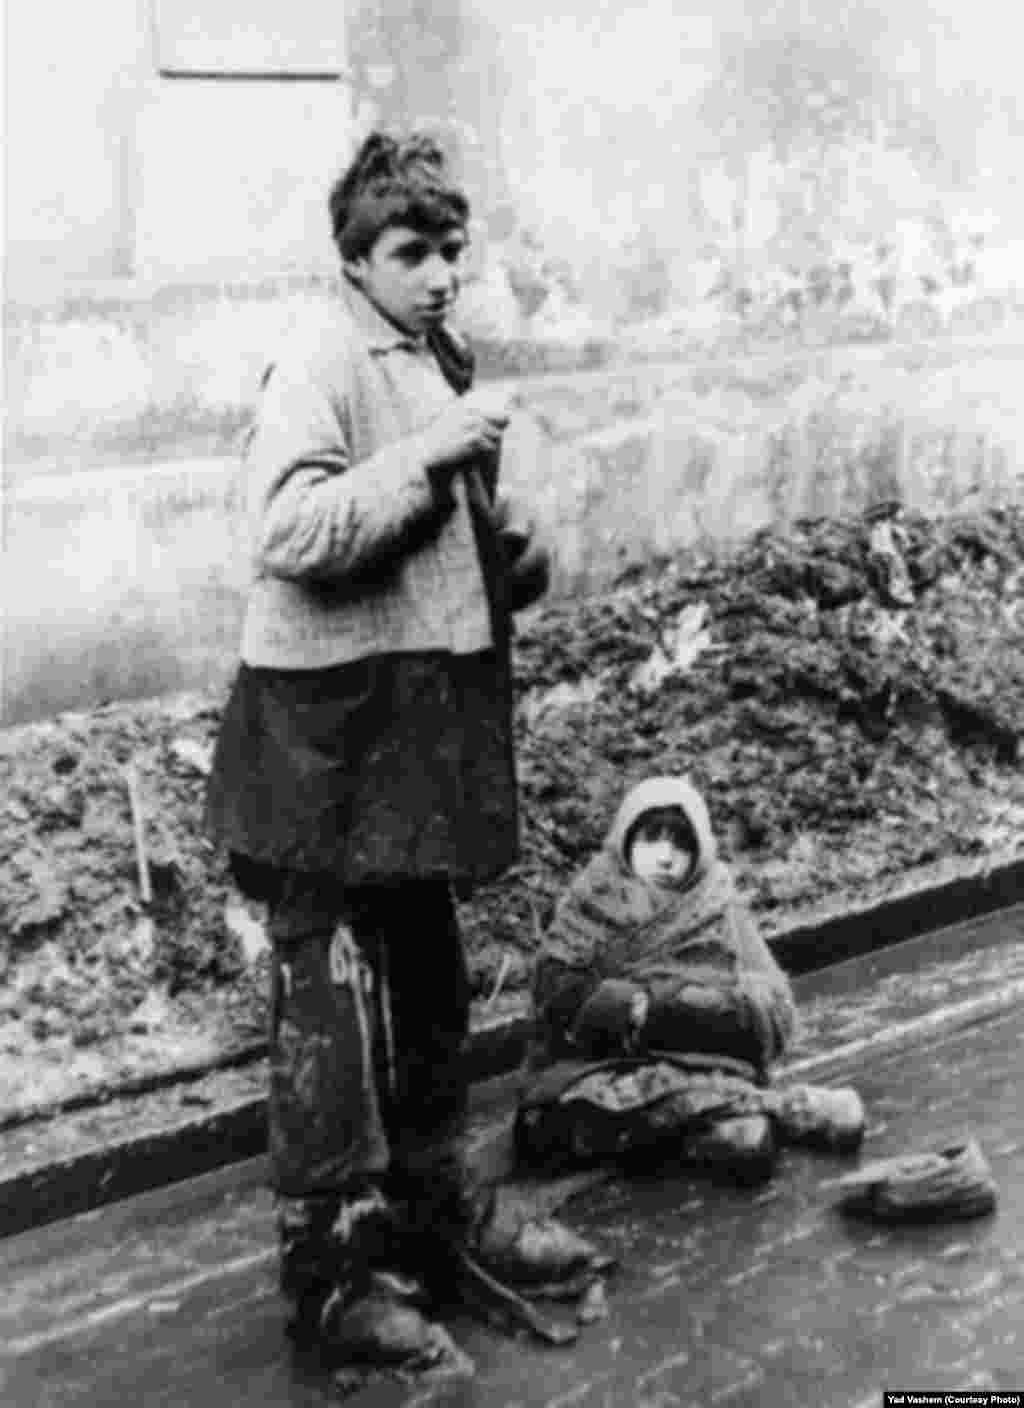 A young woman and a girl beg in the street.